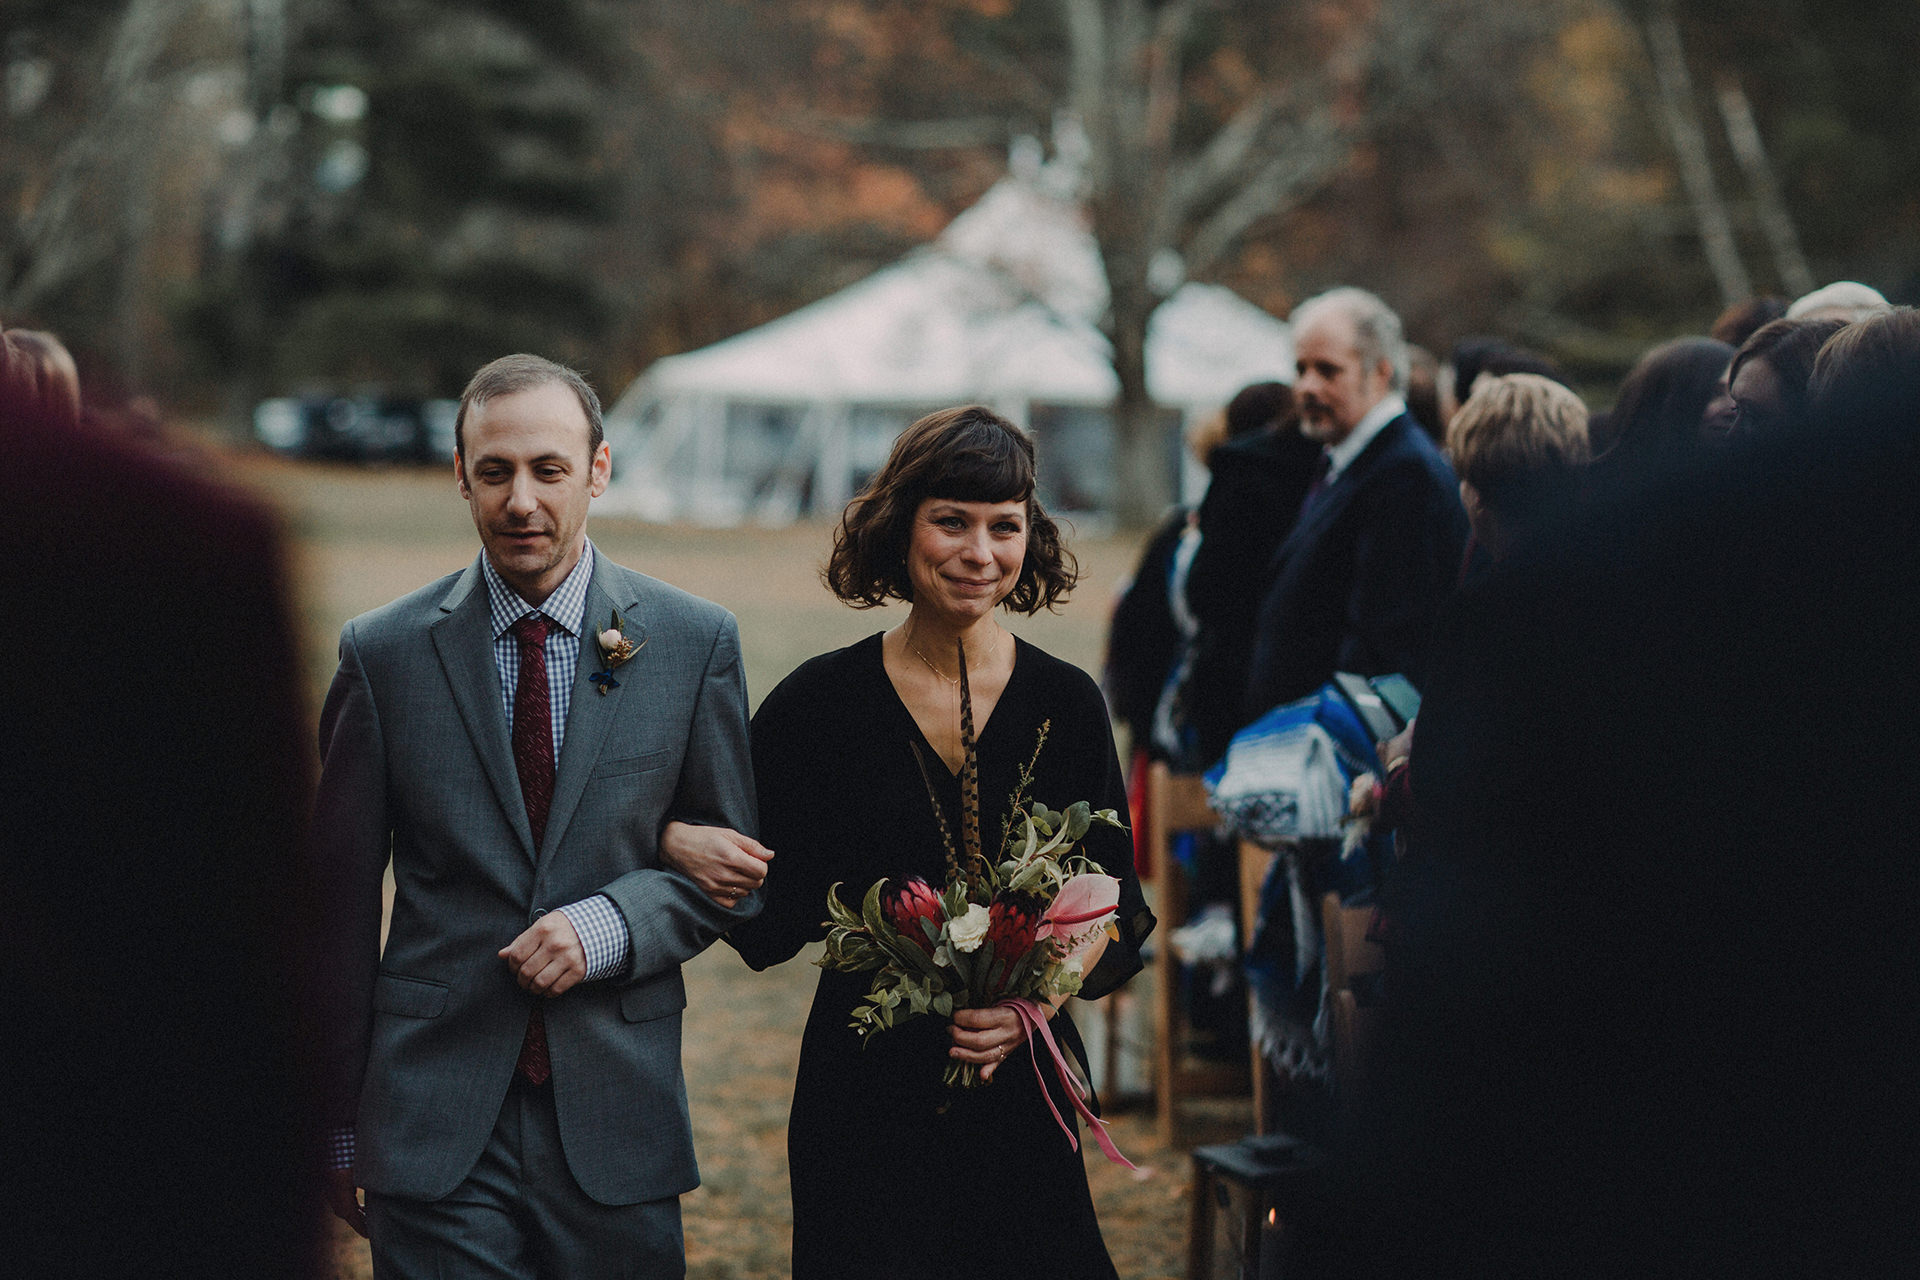 Weddind_catskills_mountain_newyjersey-170.jpg